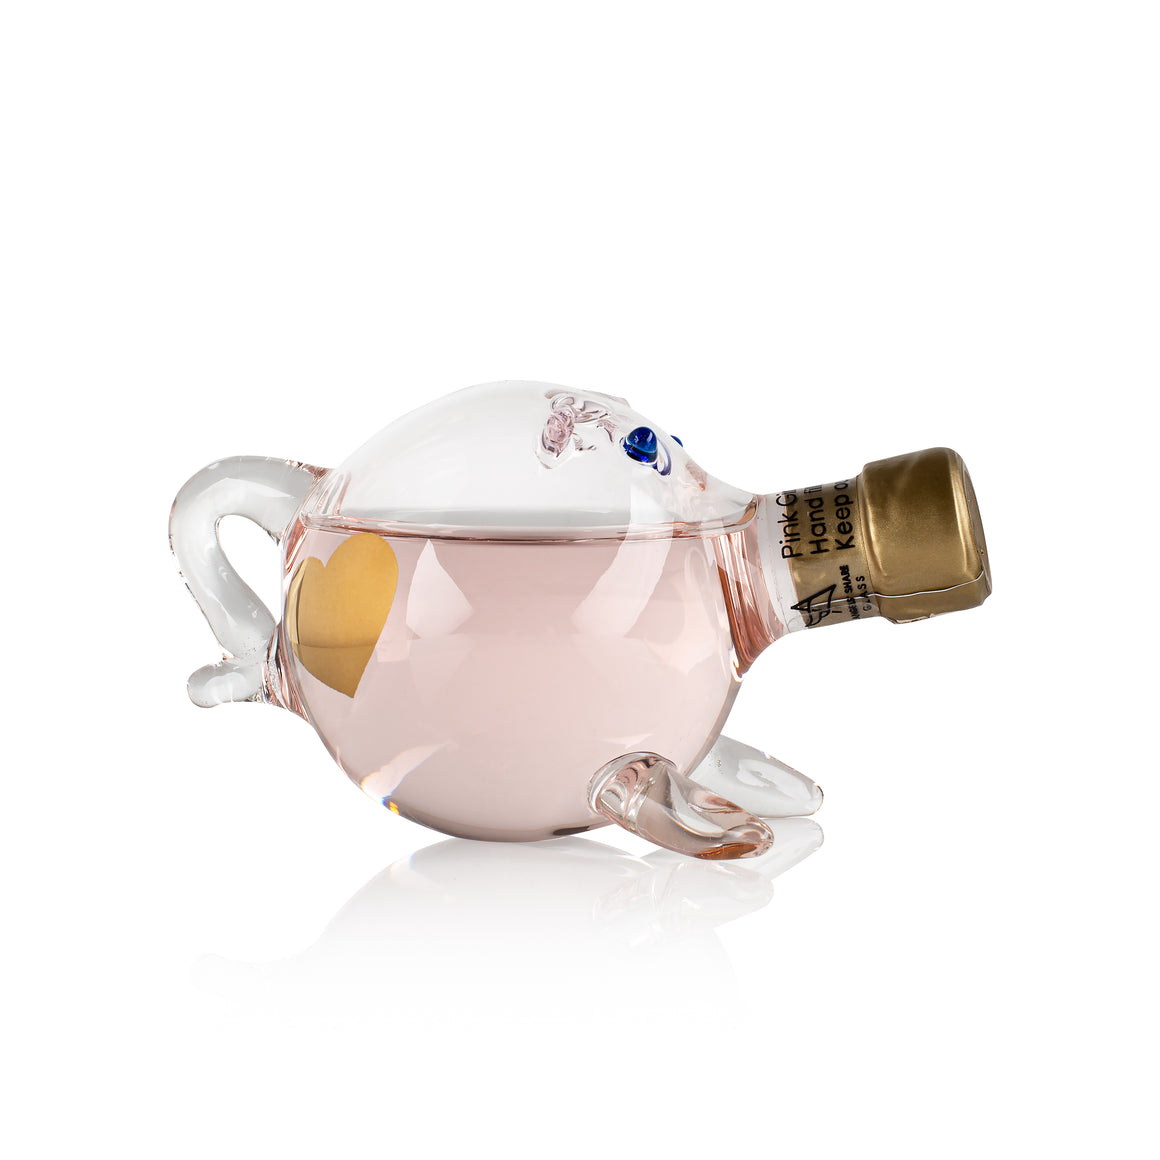 Love Gin Pigs - mini decanter filled with Artisan Gin and Love Heart Tattoos